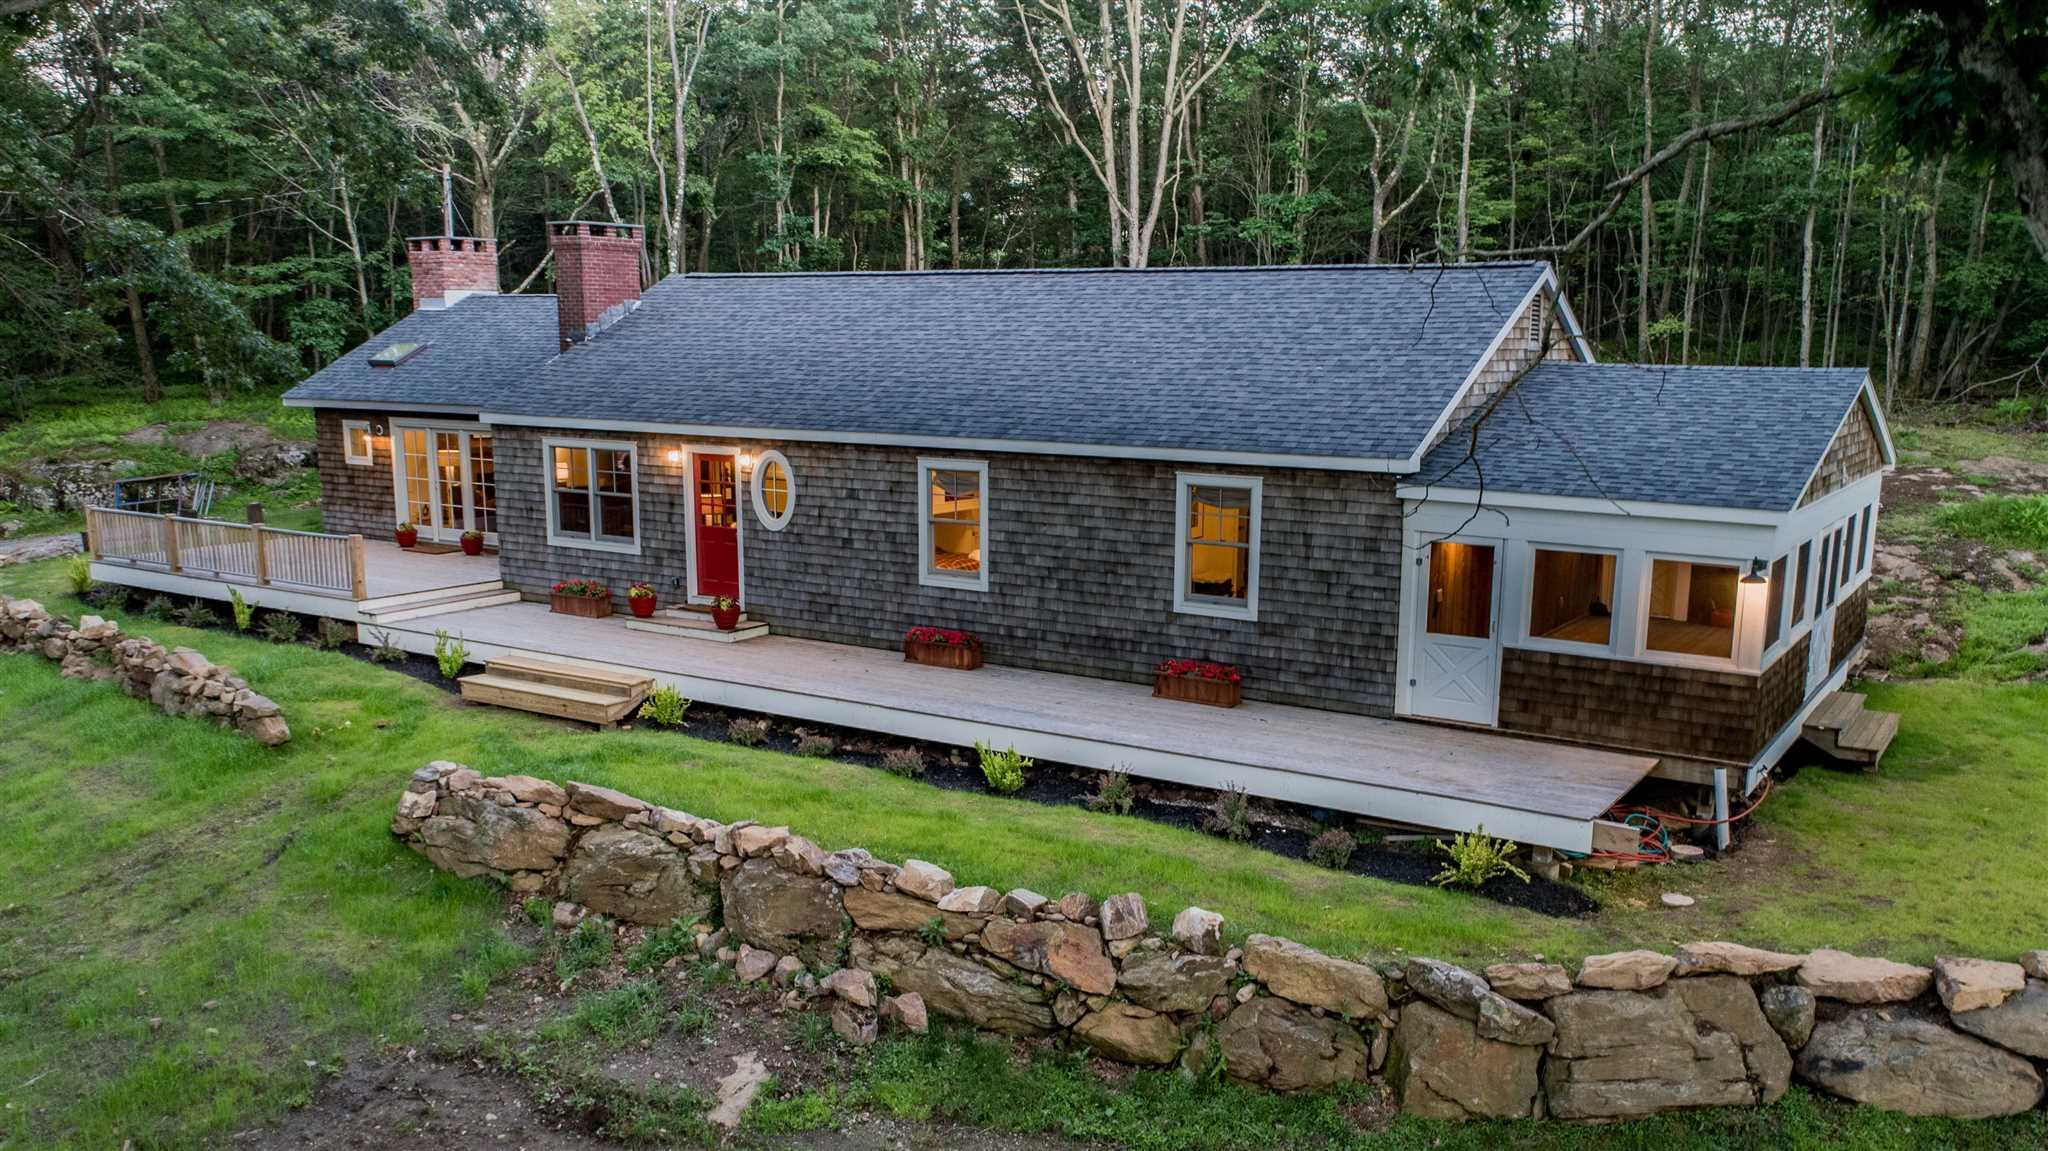 Single Family Home for Sale at 1125 OLD QUAKER HILL Road 1125 OLD QUAKER HILL Road Pawling, New York 12564 United States